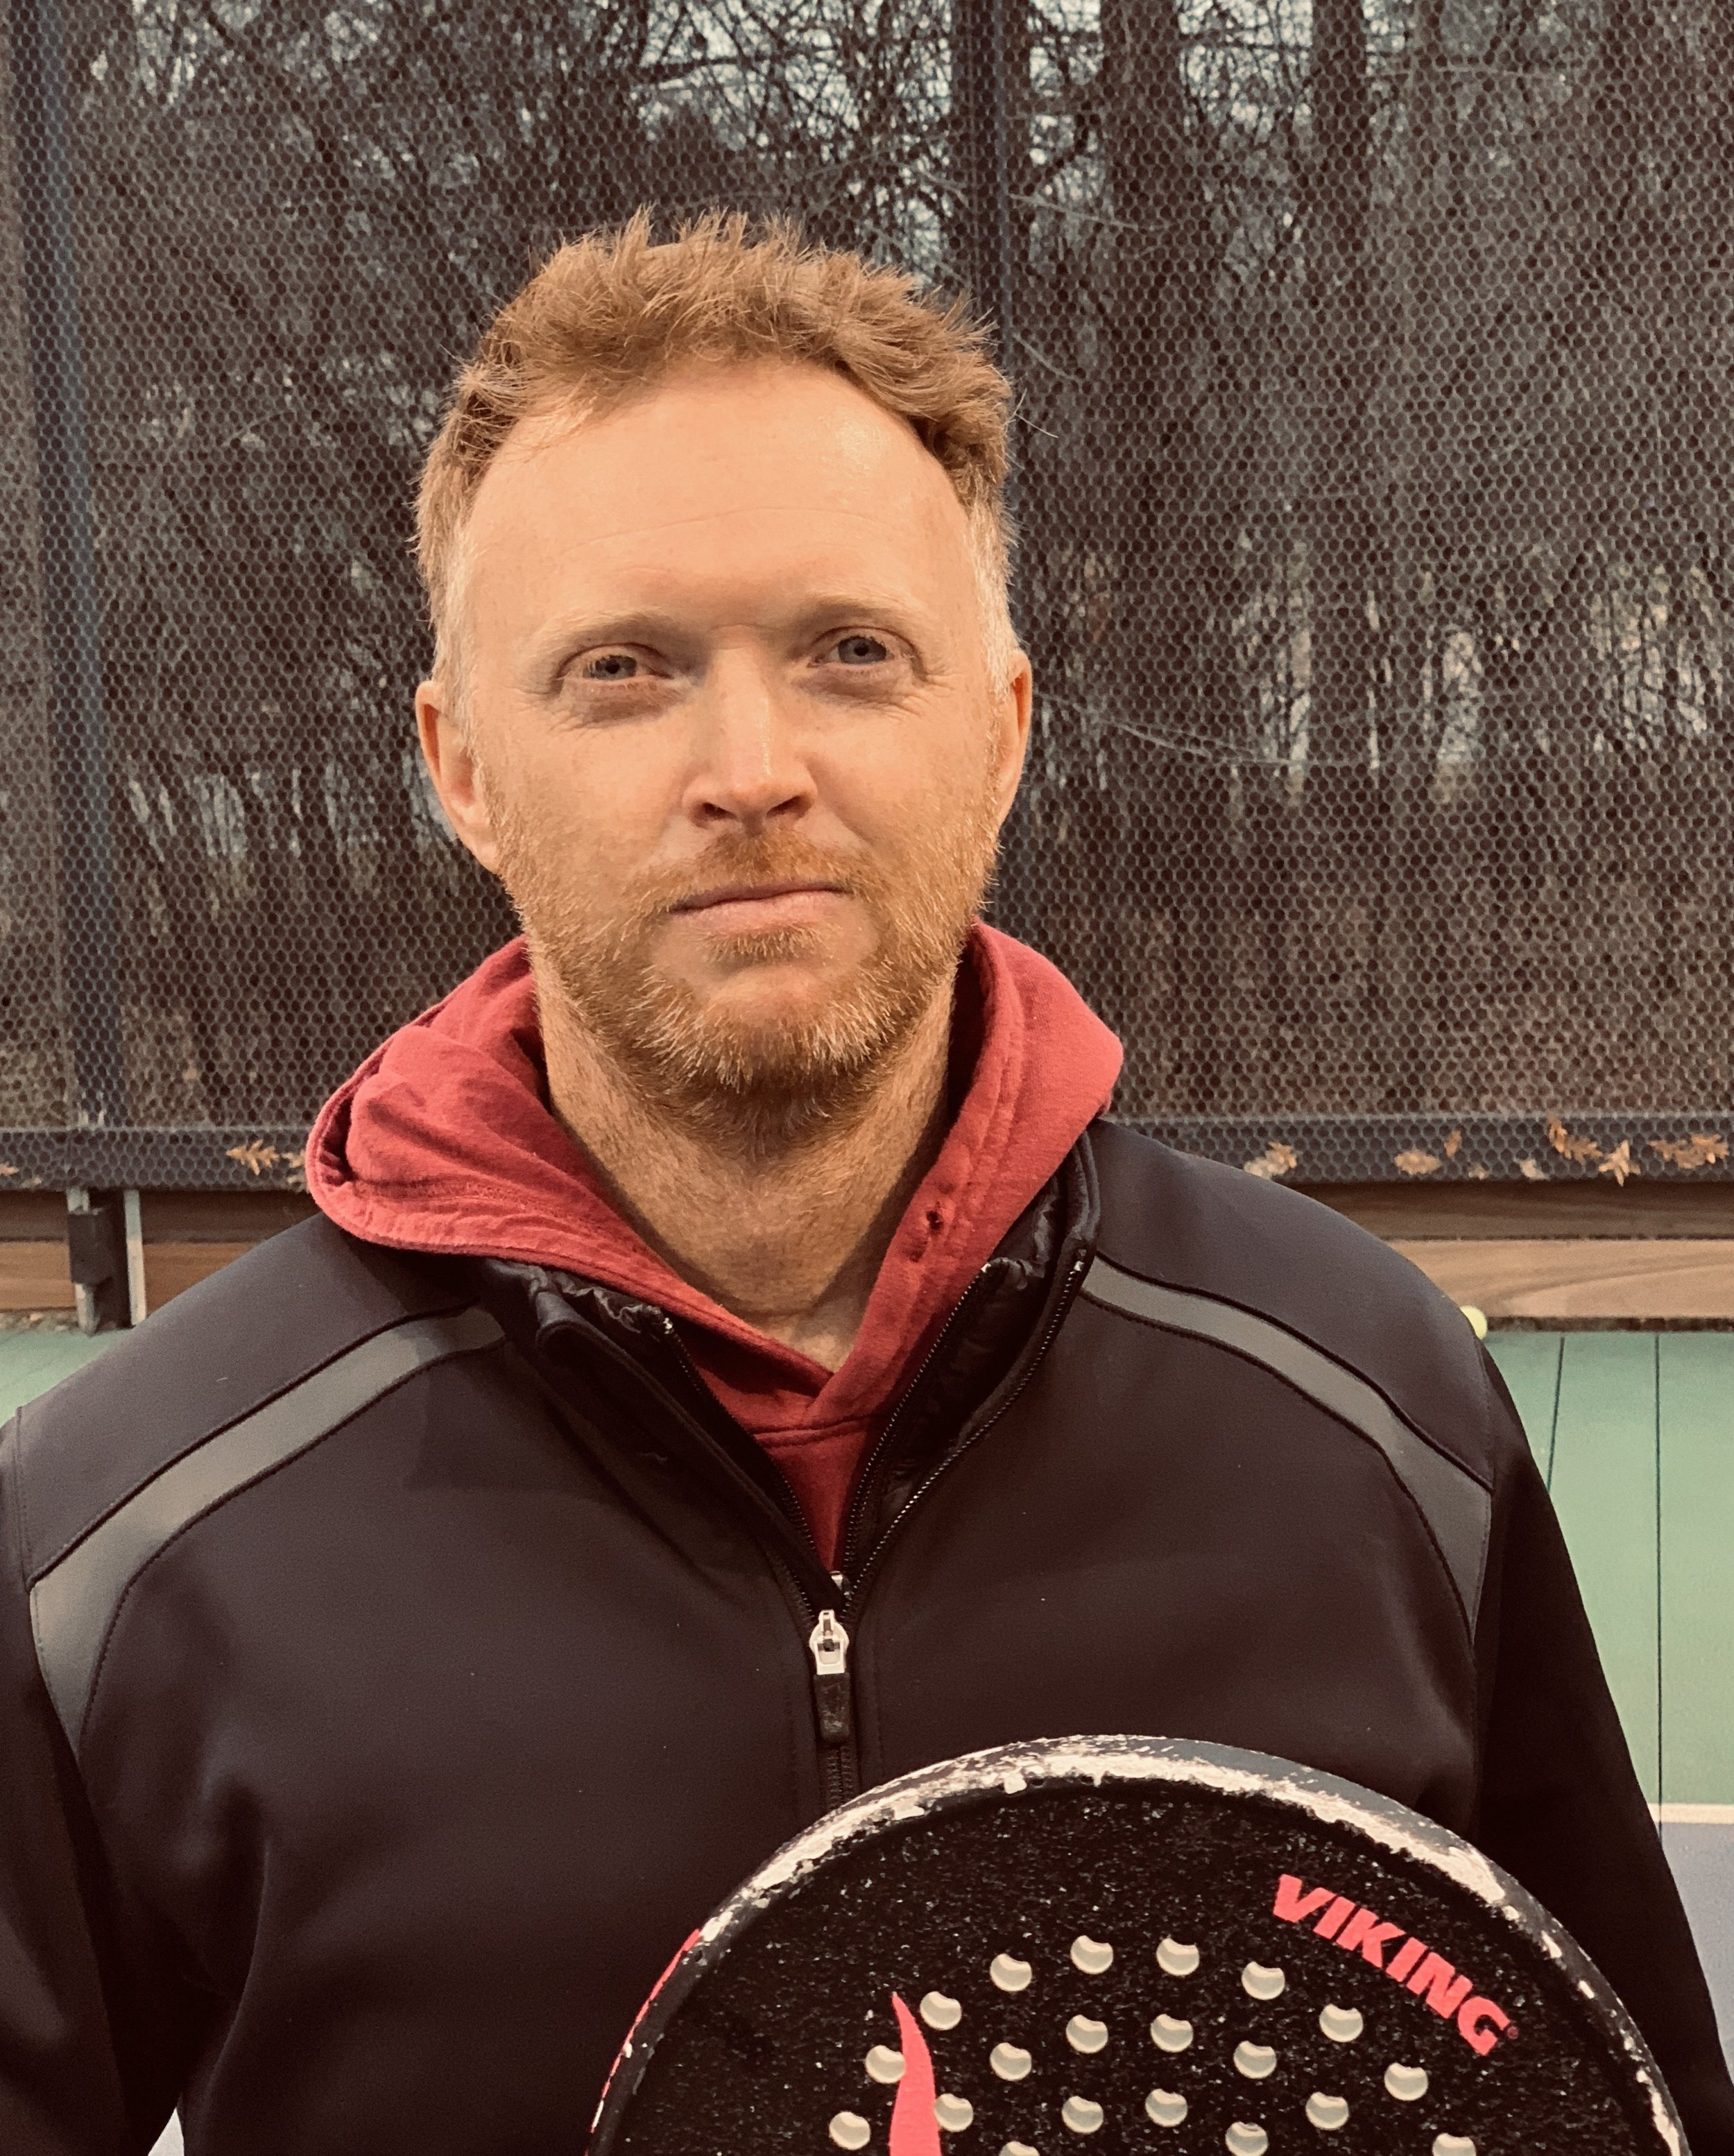 """Ben Ashford - is the Director of Racquet Sports at The Tennaqua Club in Deerfield, IL. Ben Ashford brings the accent to the Paddle Hacks """"Duo"""". His hobbies include petting his soccer ball and kicking his small dog around… wait, reverse it. Ashford brings the true talent to the team as he's the one with a real junior academy credentials and a short, yet mighty, pro-tennis career. Ben somehow manages to love and hate everyone at the same time. His English accent is """"rubbish"""" and his smooth, soft delivery will leave you wondering if his aggressive chains of expletives were even swear words at all. What a hack…Oh, how the mighty have fallen... into a pit… known as platform tennis."""